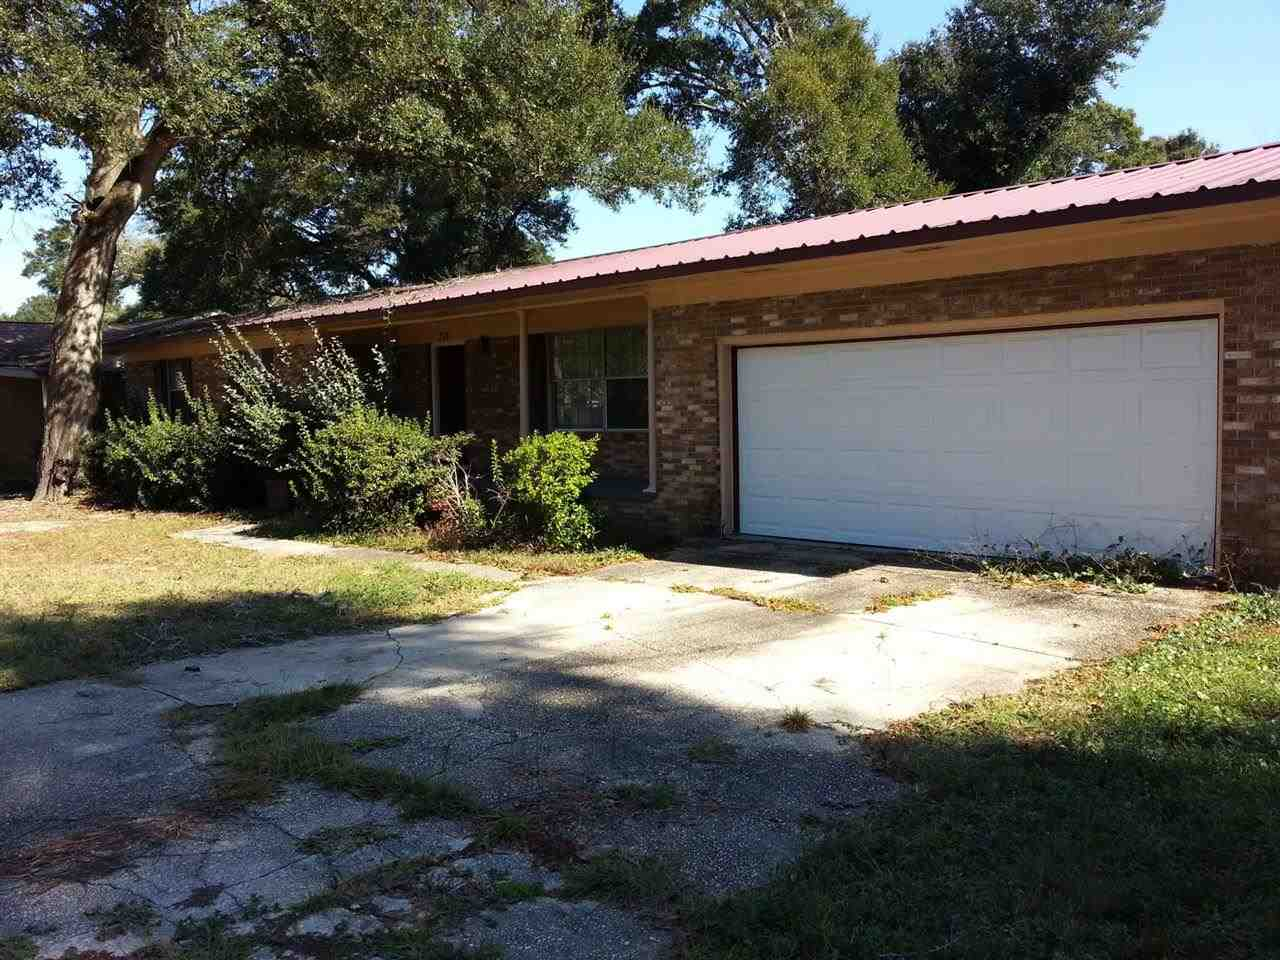 714 N 59TH AVE PENSACOLA, FL 32506 454793